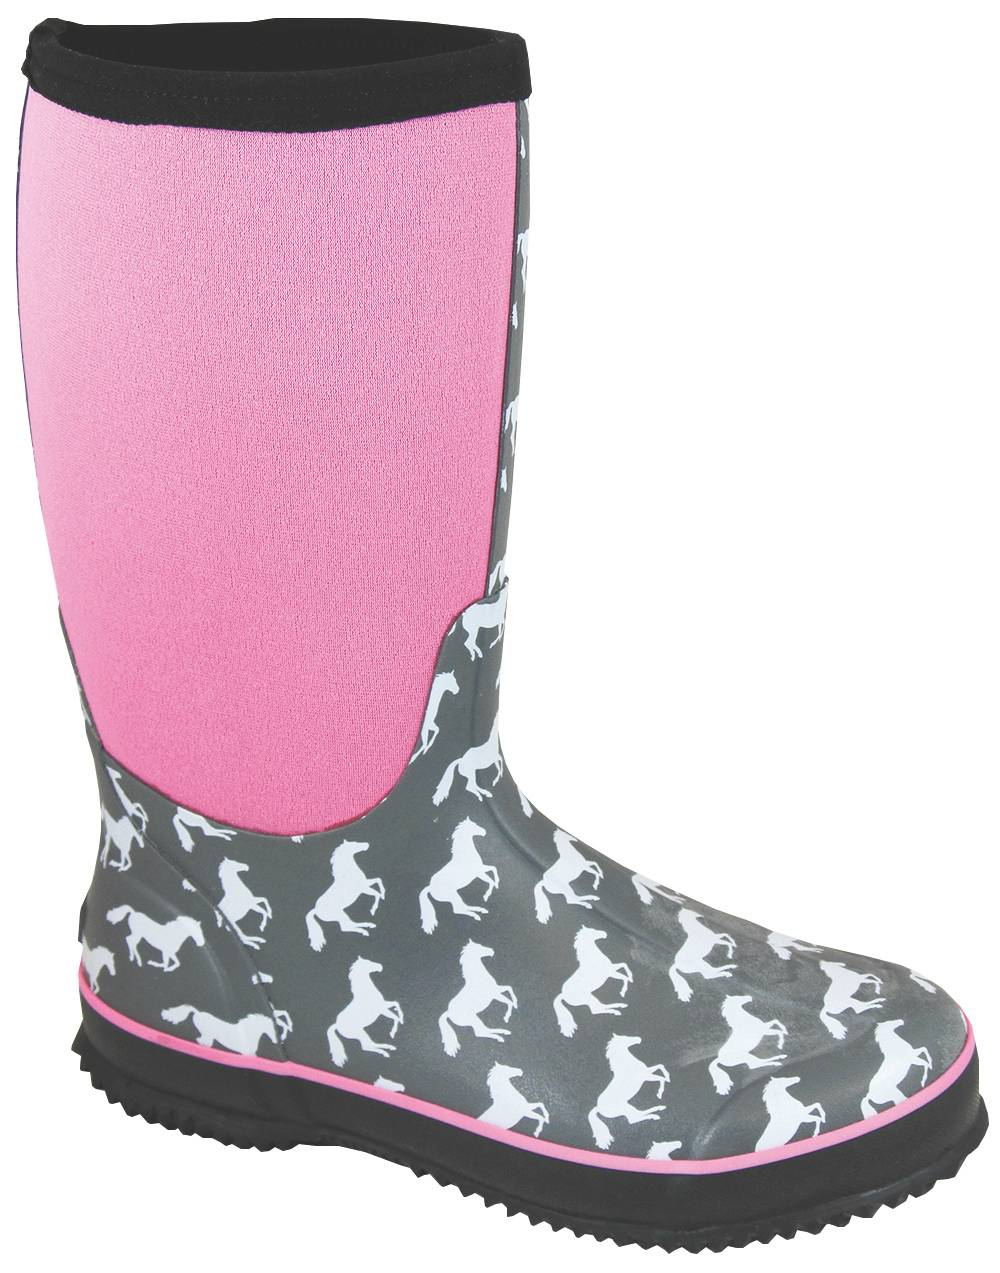 Smoky Mountain Women's Horses Amphibian Boots - Gray/Pink